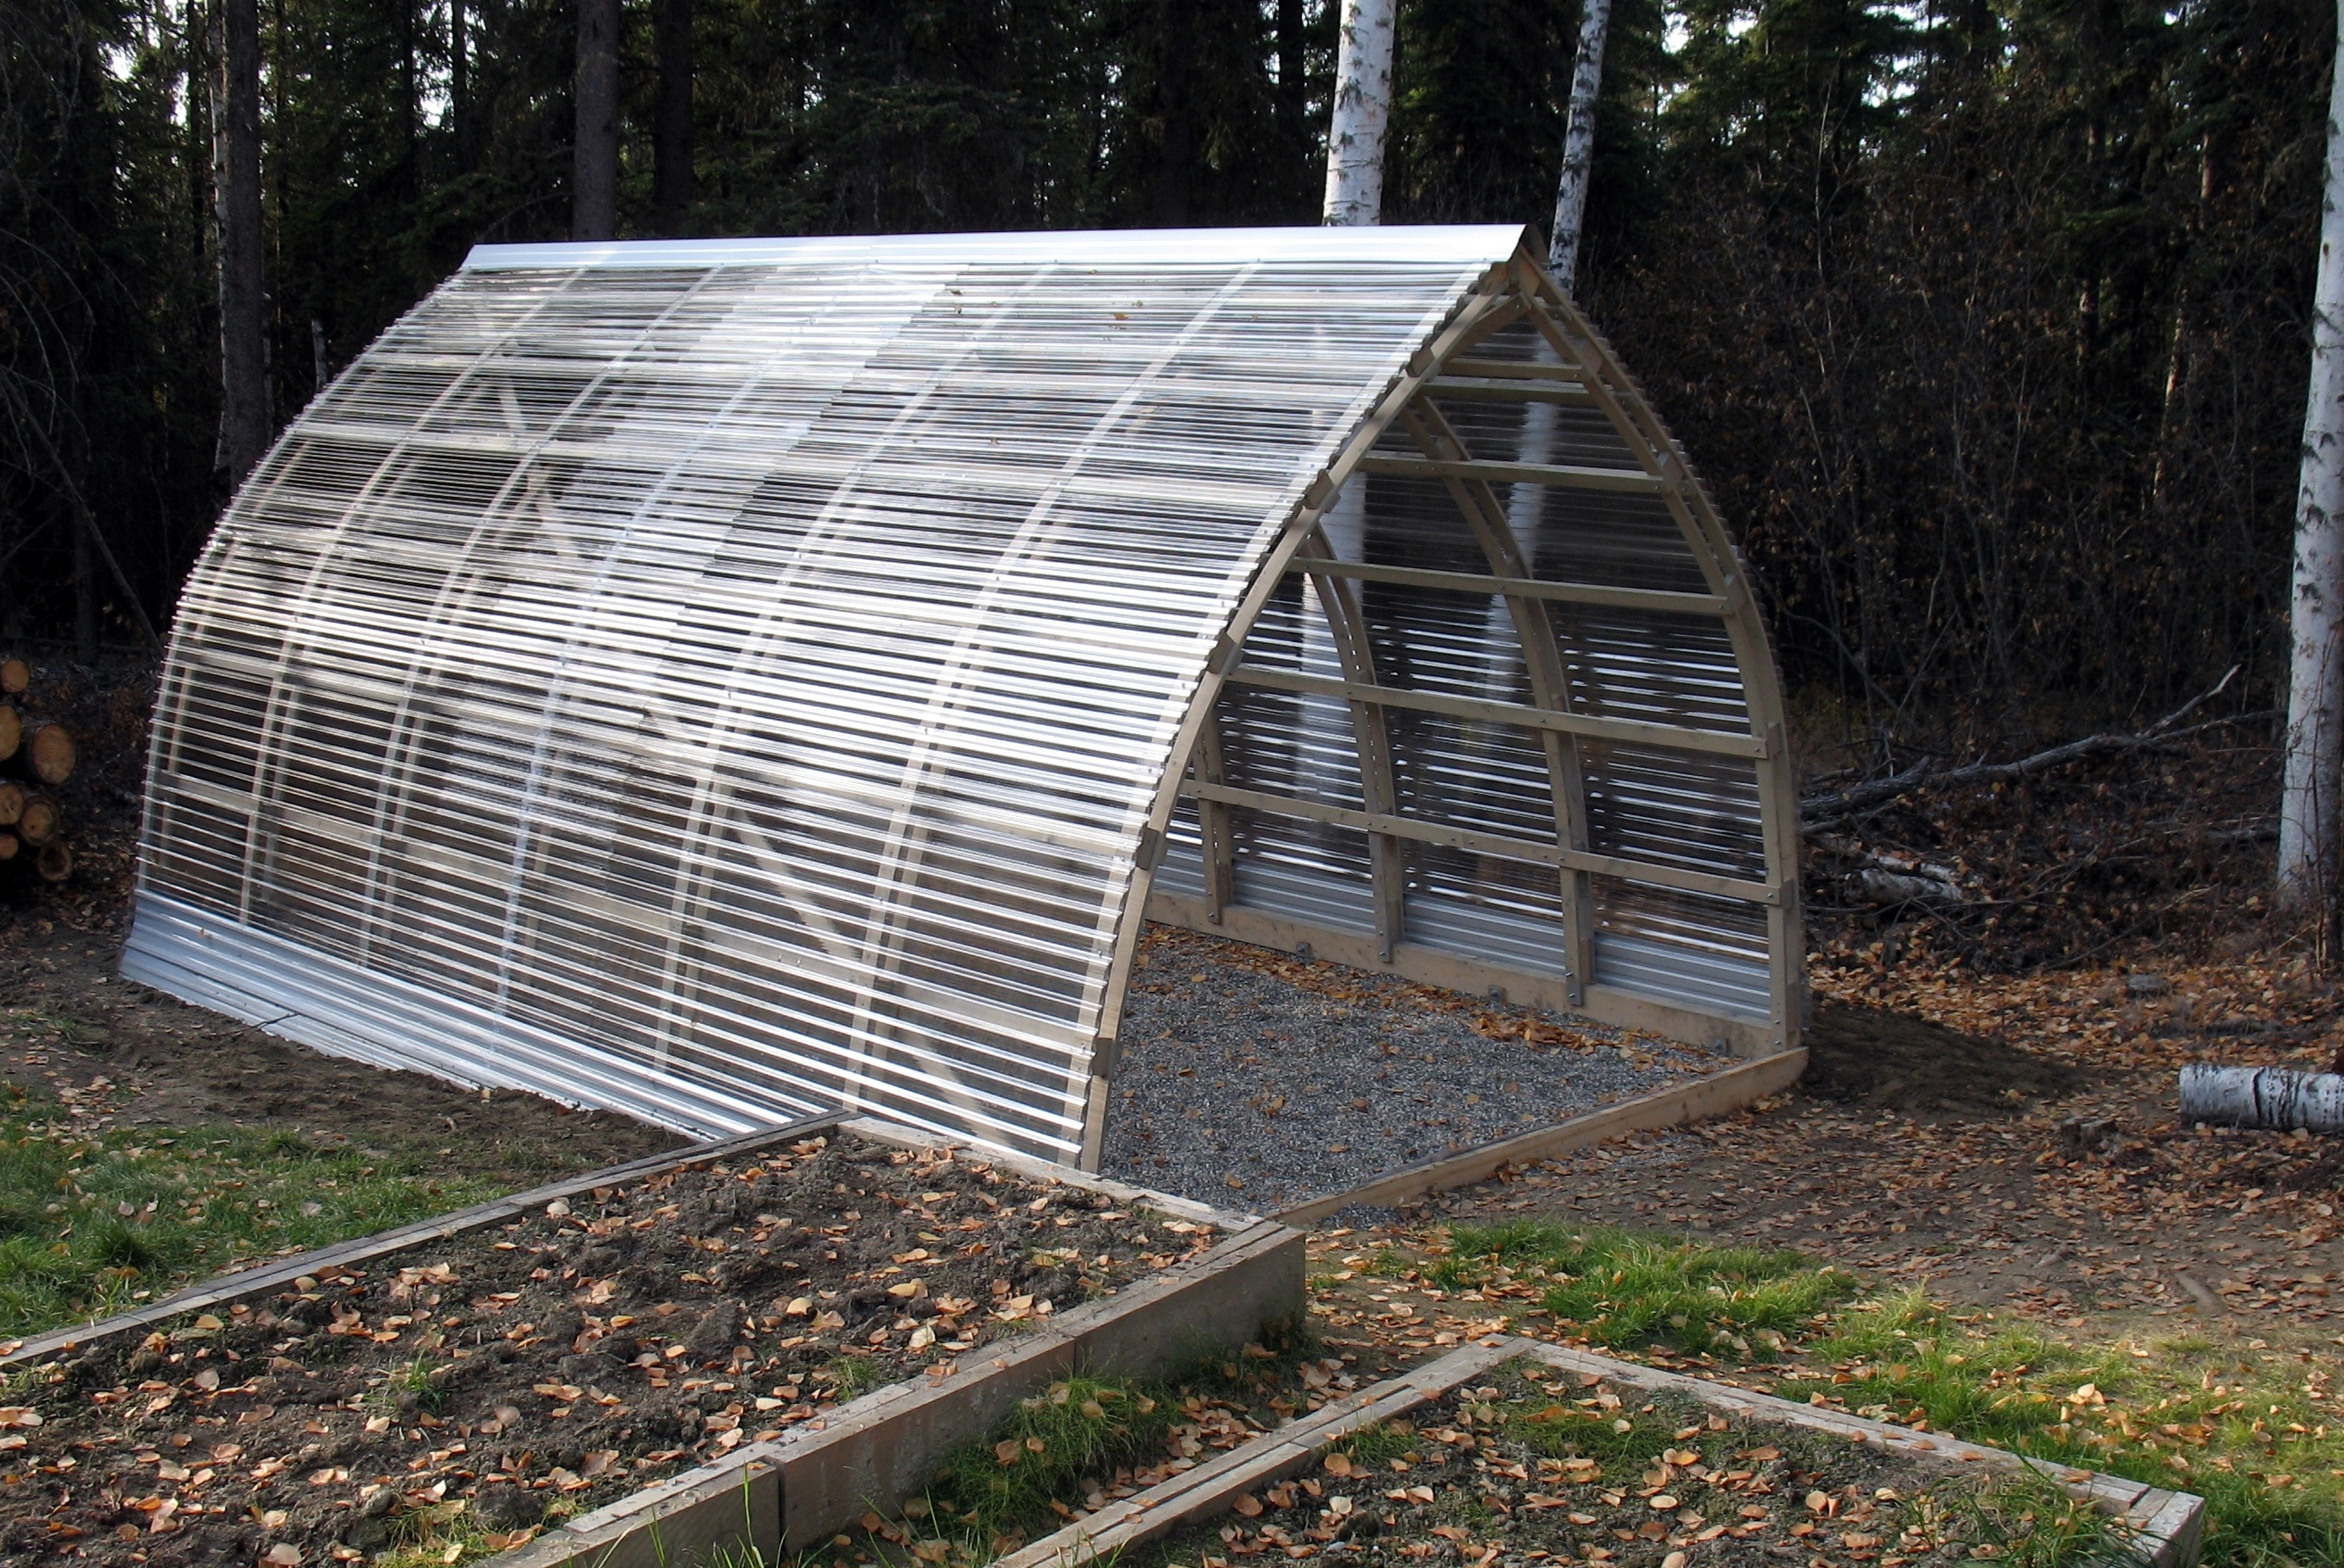 Greenhouse Design -Need feedback! (greenhouses forum at permies) on